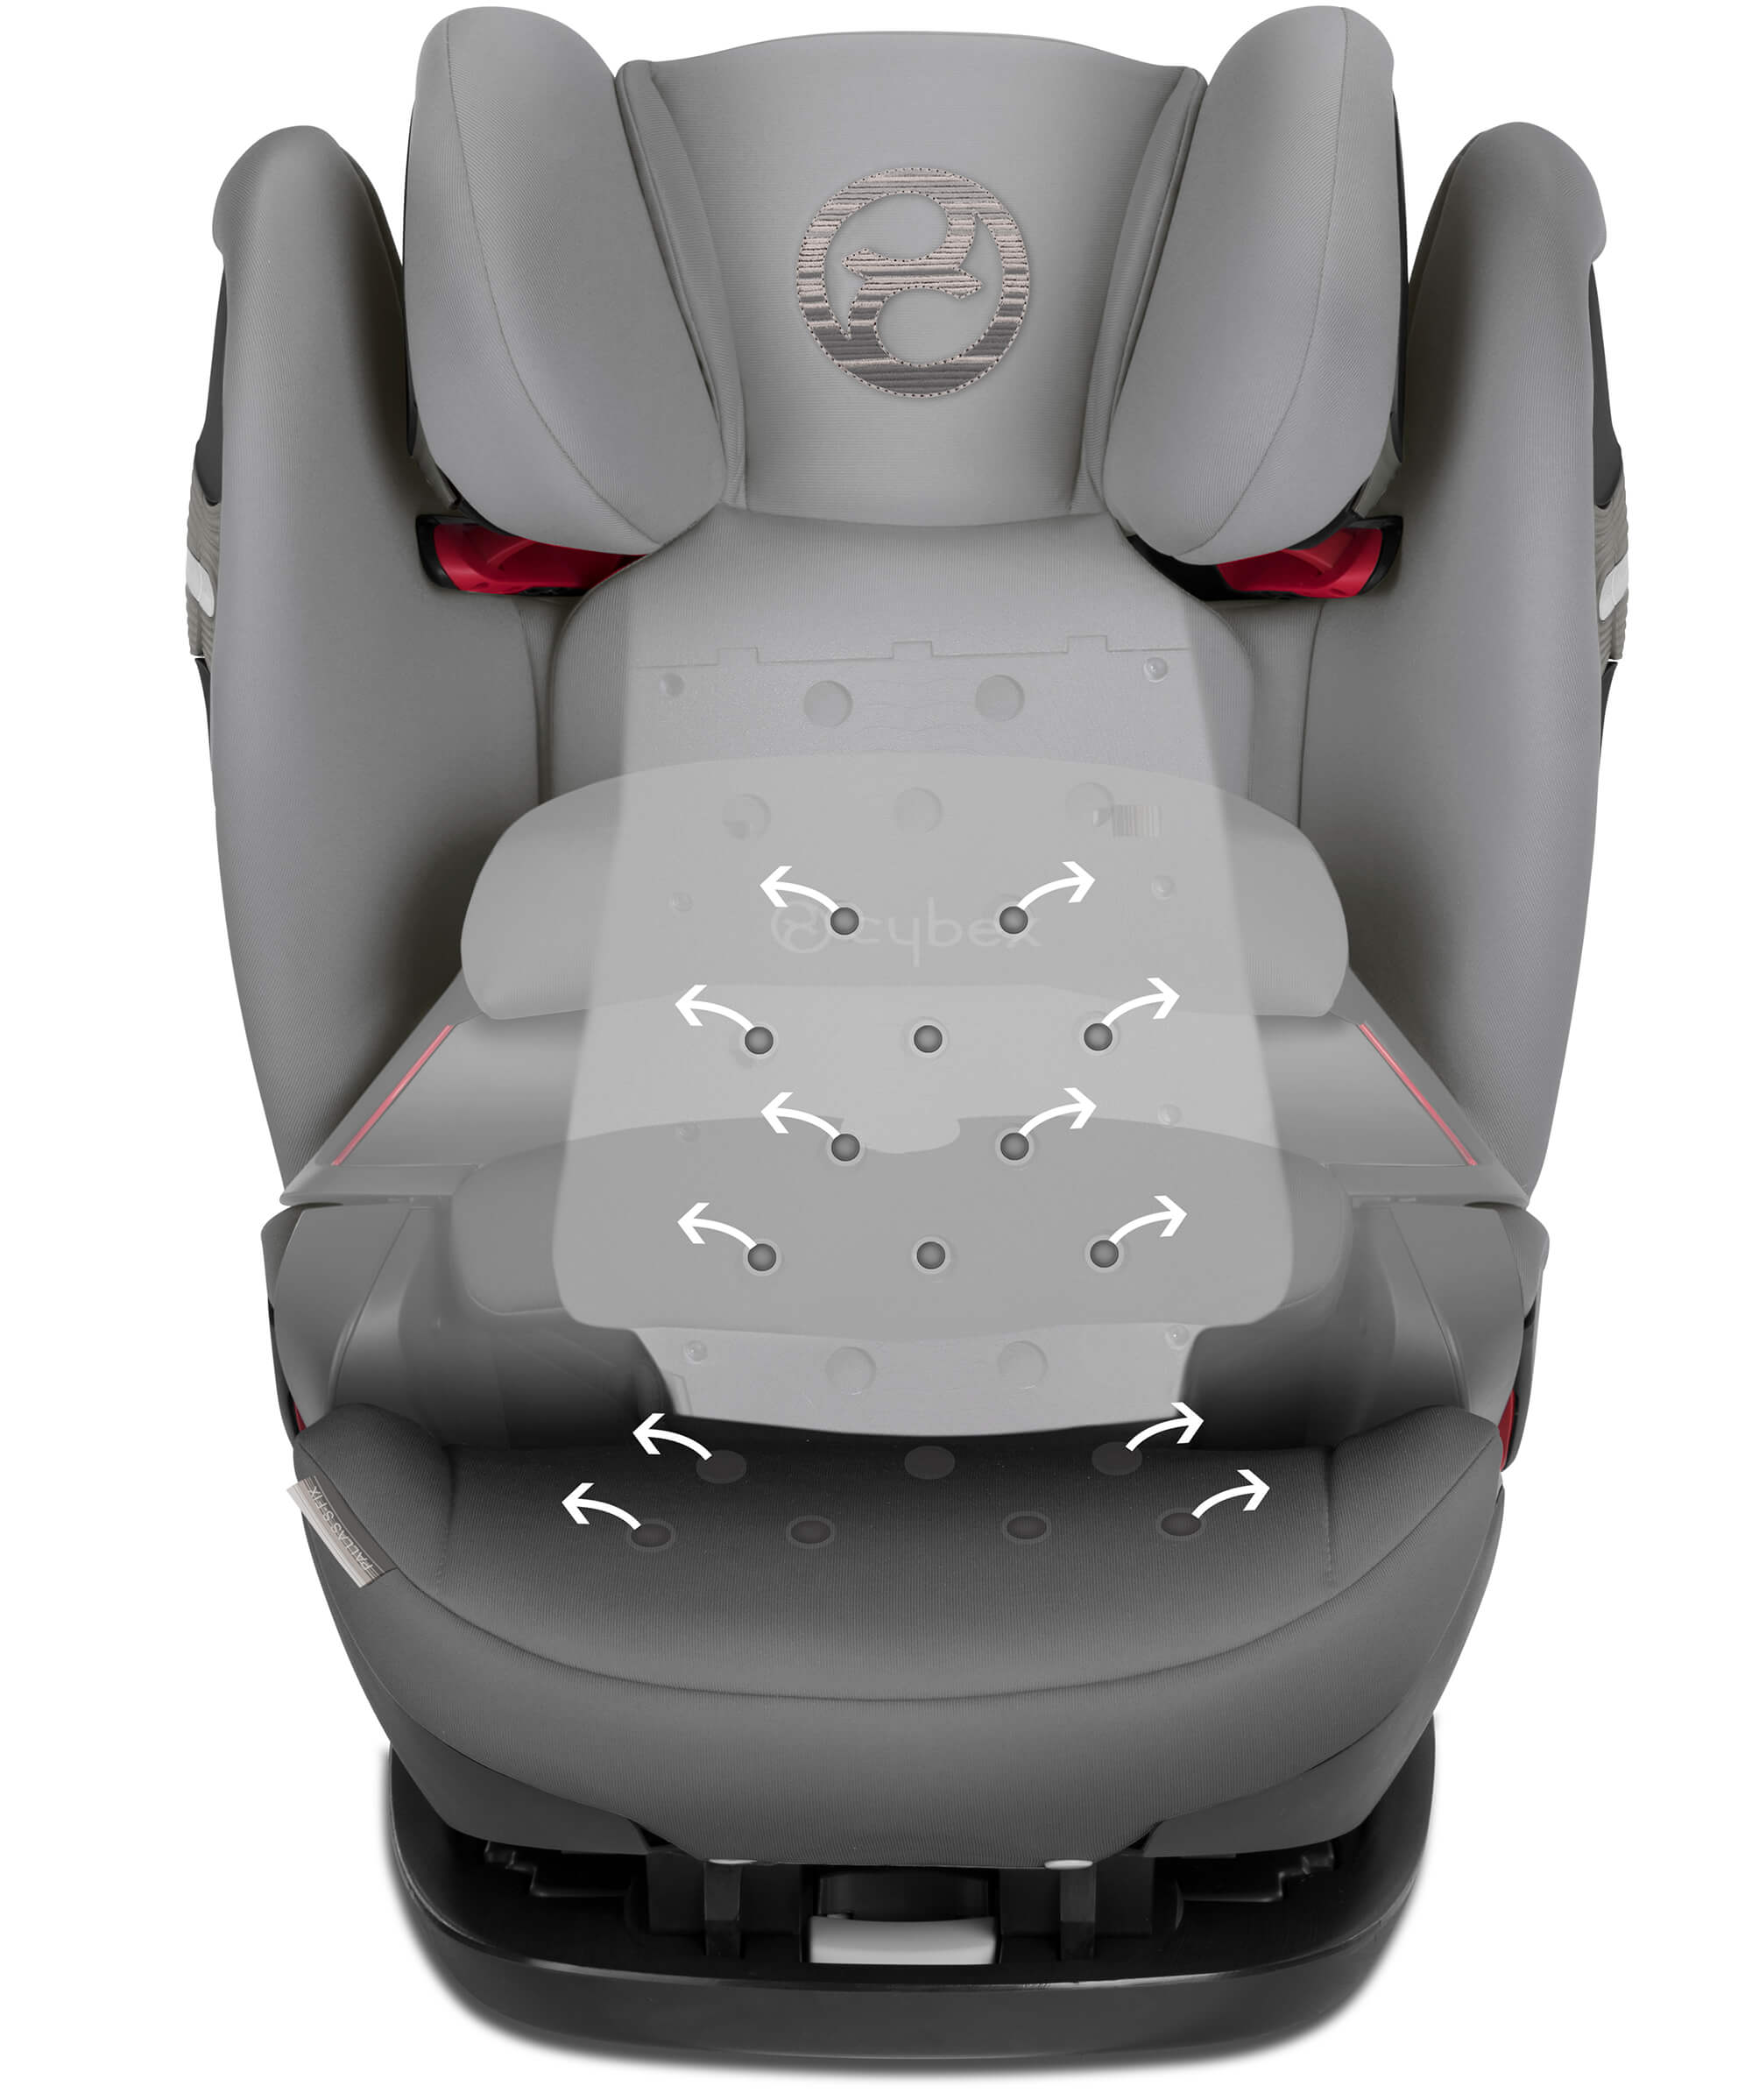 Cybex Pallas S Fix Child Seat Victory Black Scuderia Ferrari Edition Group 1 2 3